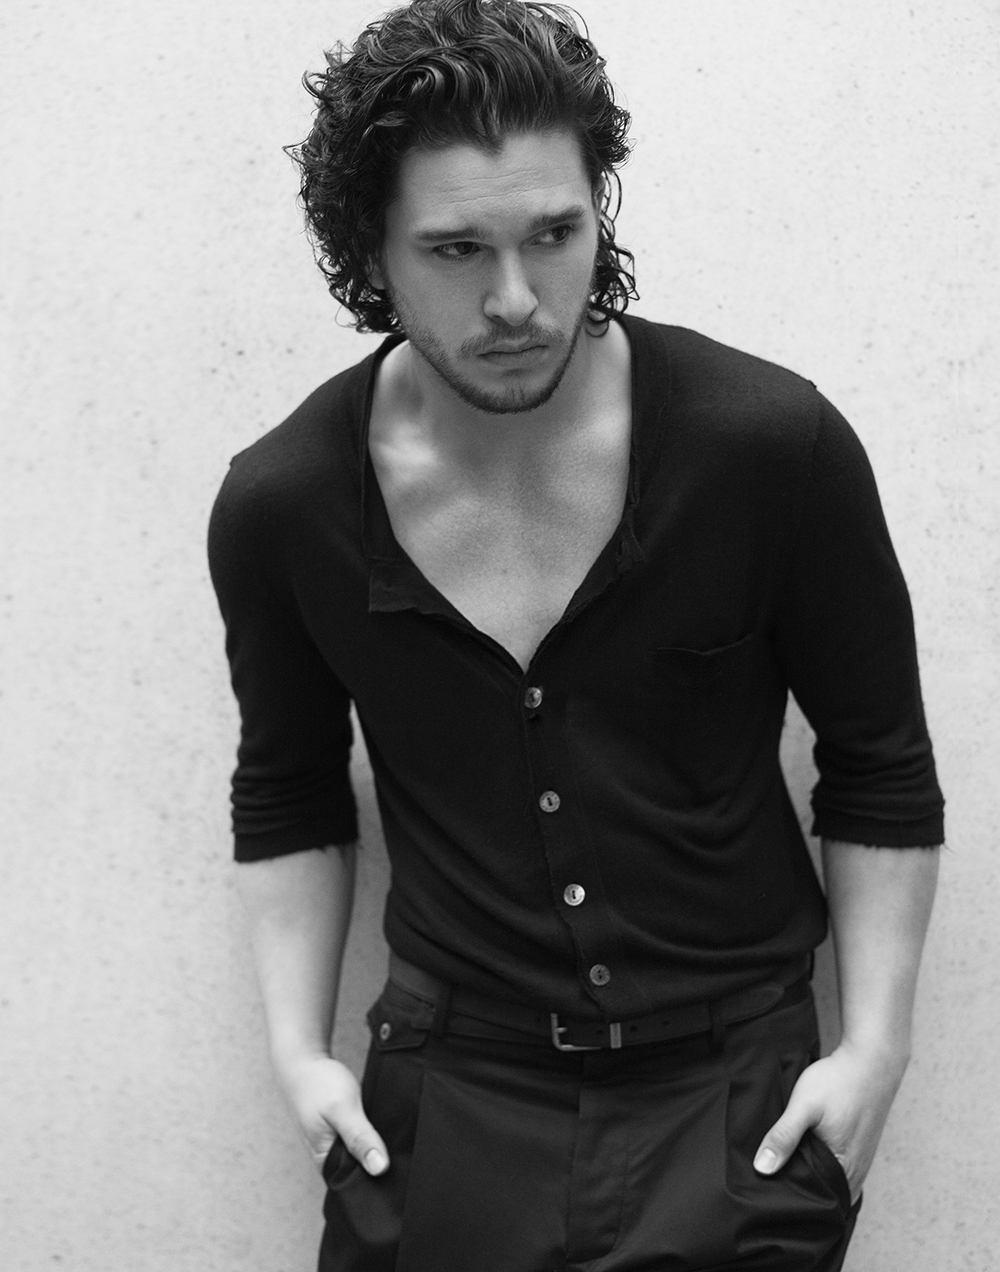 20130421_Kit_Harington_Shot_02_200(PF).jpg